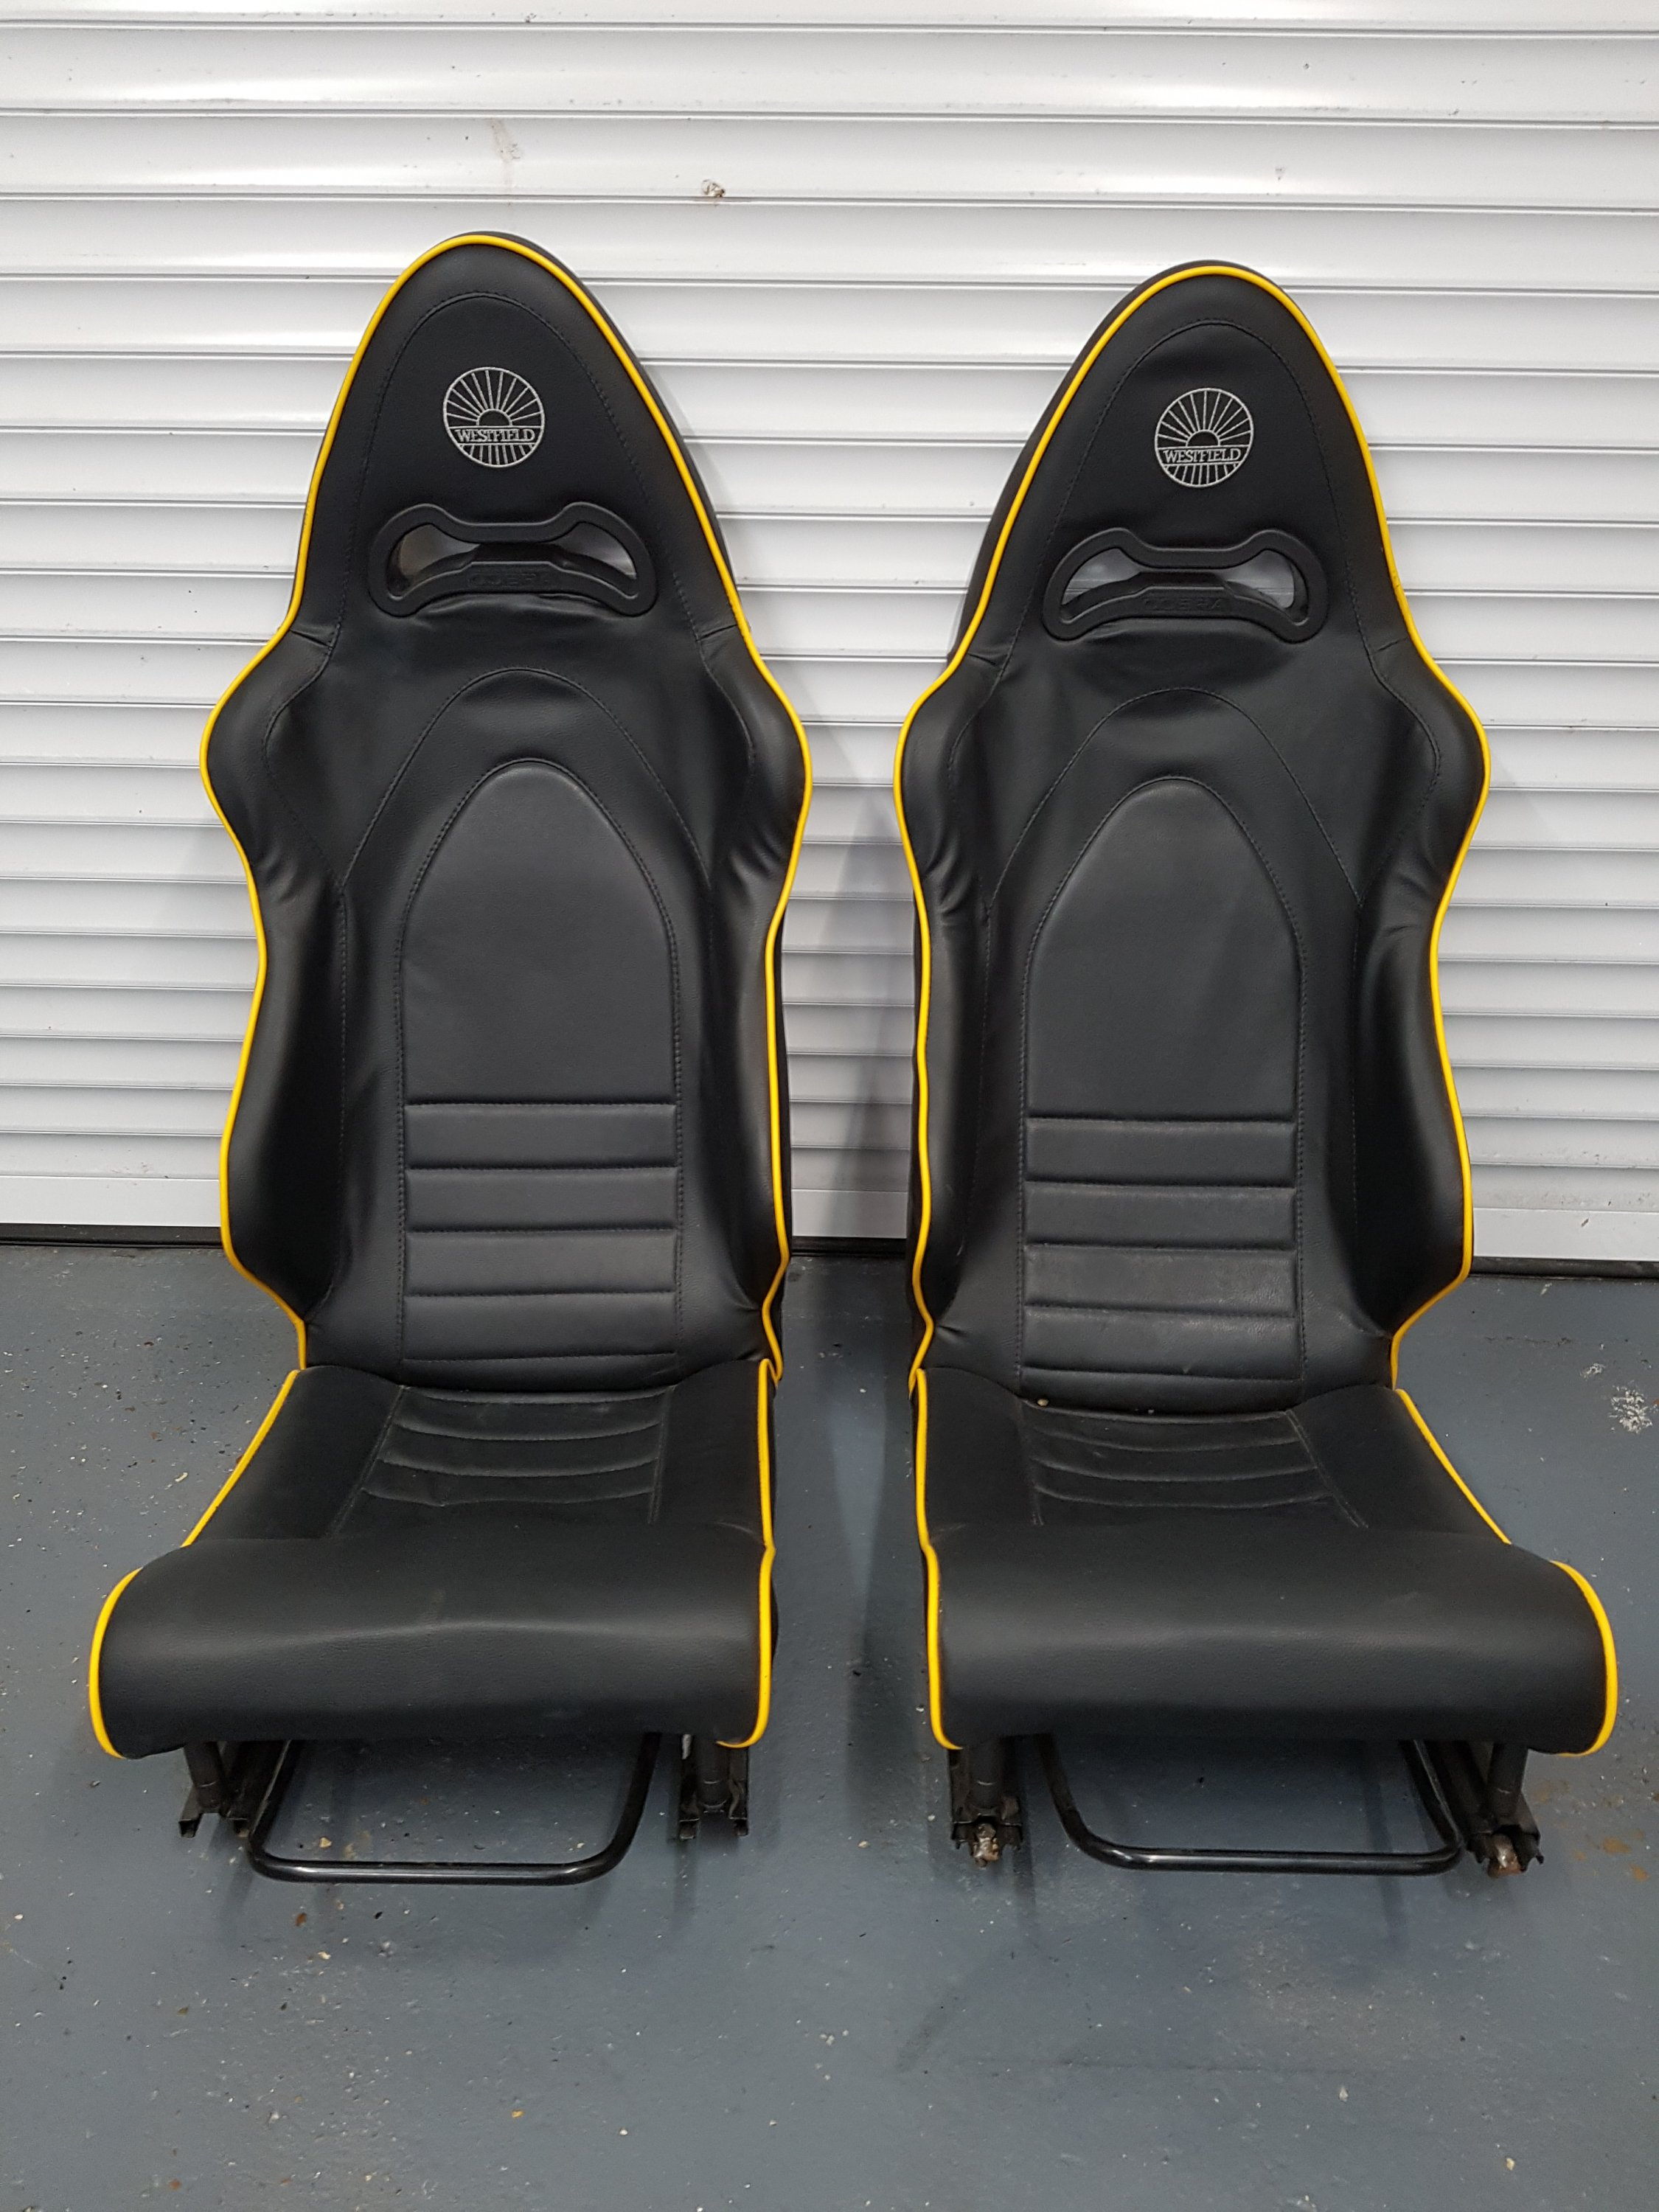 Sport Cars For Sale >> Pair of Sport Turbo Westfield Seats and Runners - Parts for Sale - WSCC - Community Forum